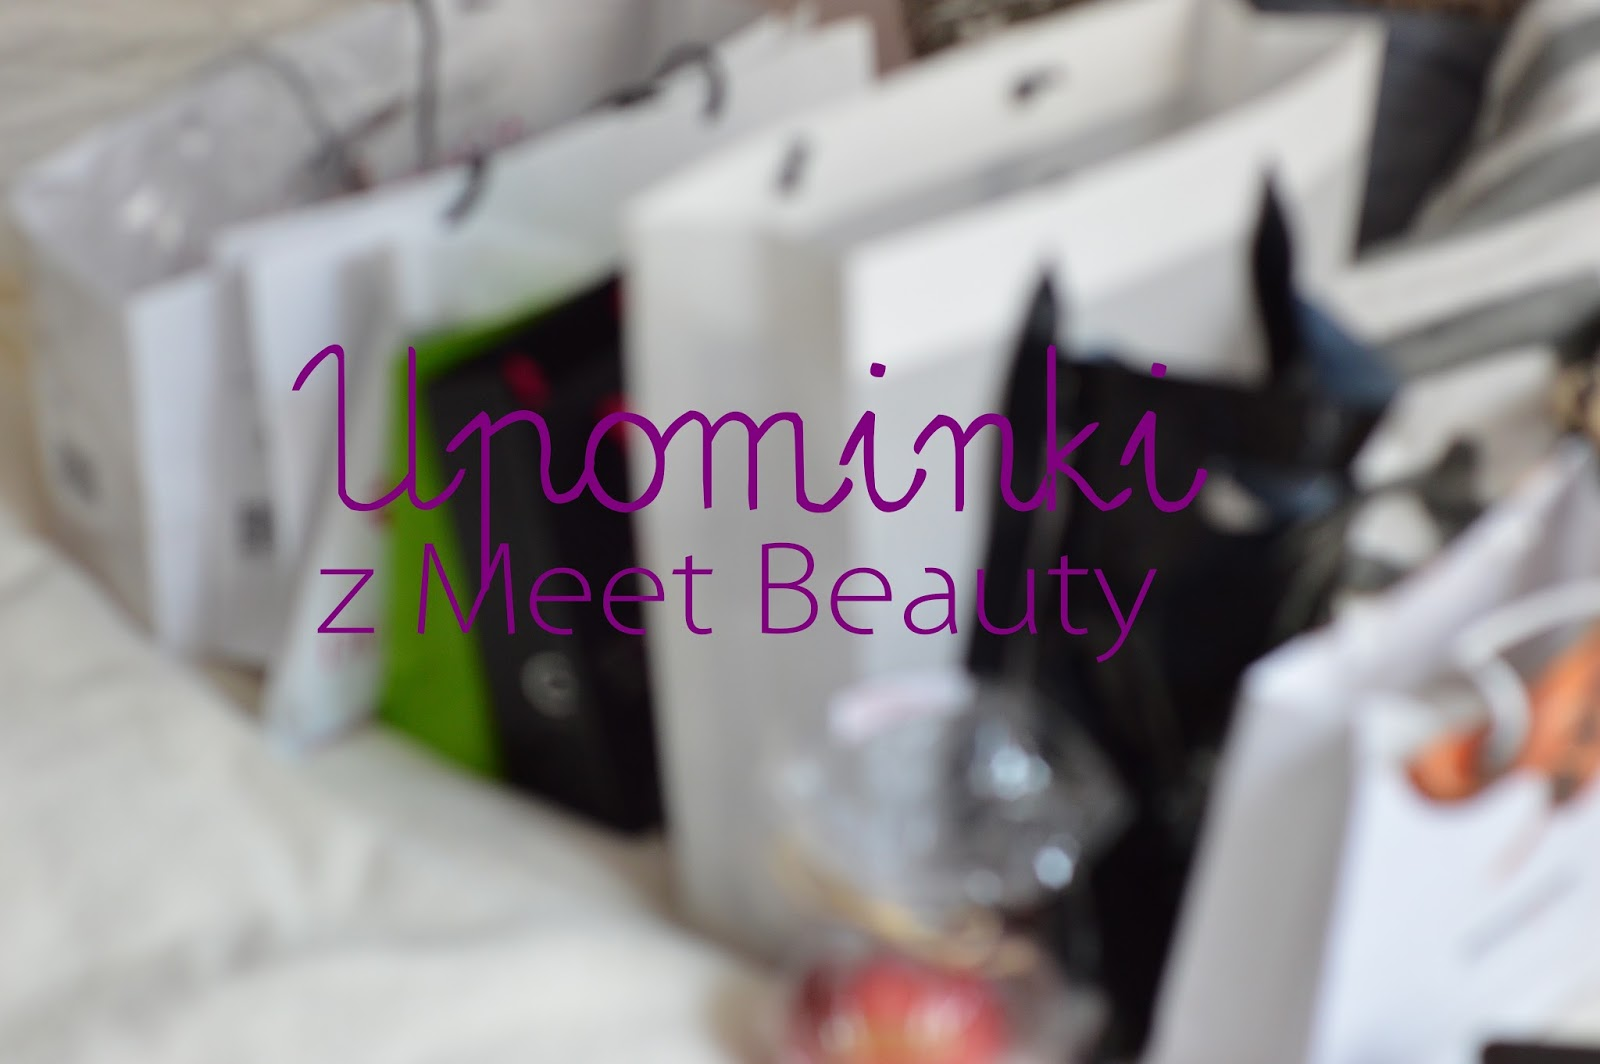 UPOMINKI Z MEET BEAUTY CONFERENCE